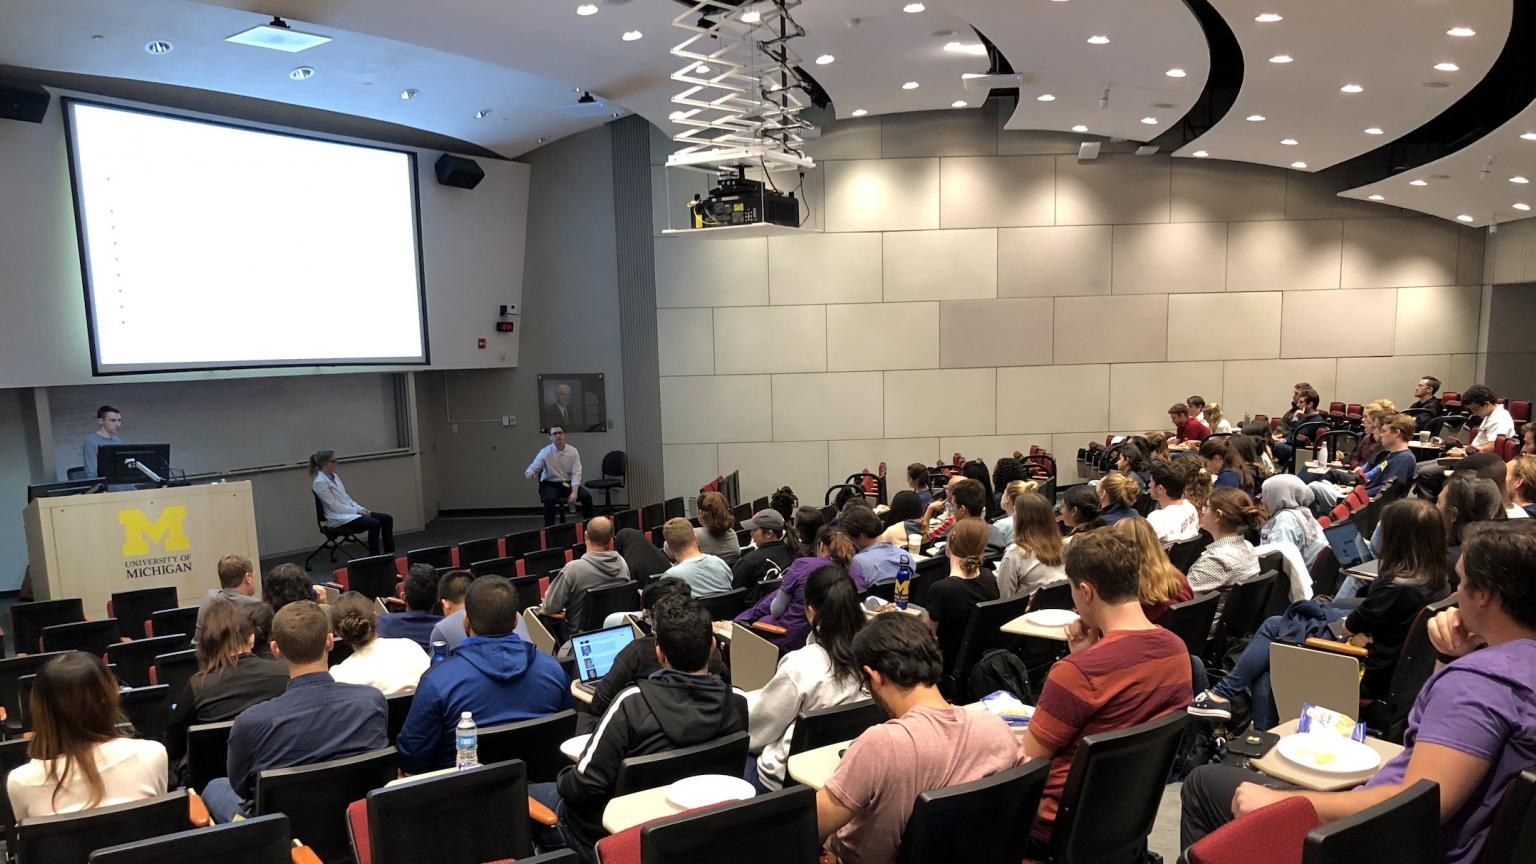 Students in auditorium attending the SCRUBS Welcome presentation